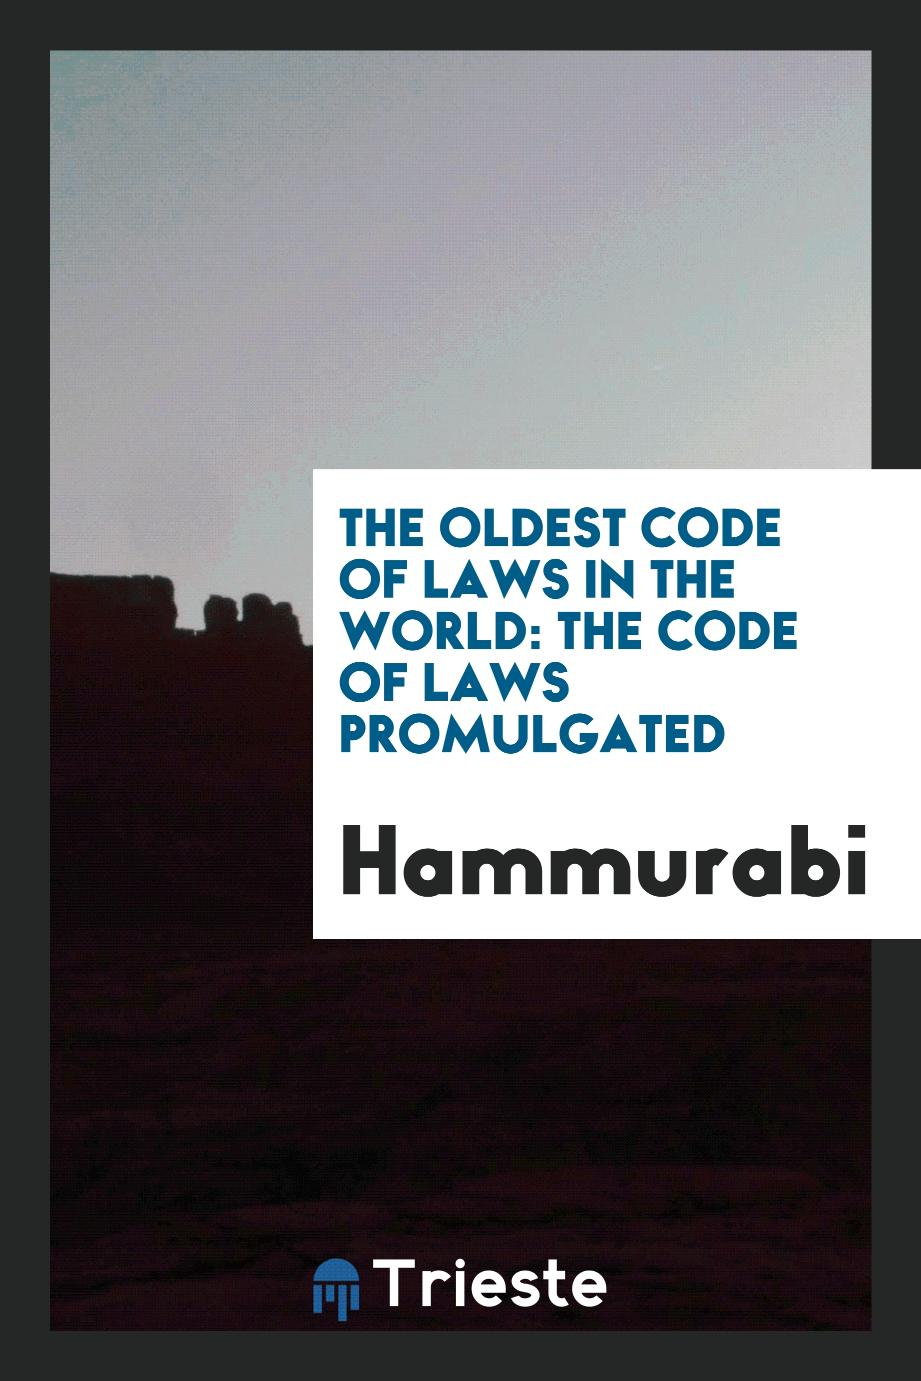 The Oldest Code of Laws in the World: The Code of Laws Promulgated